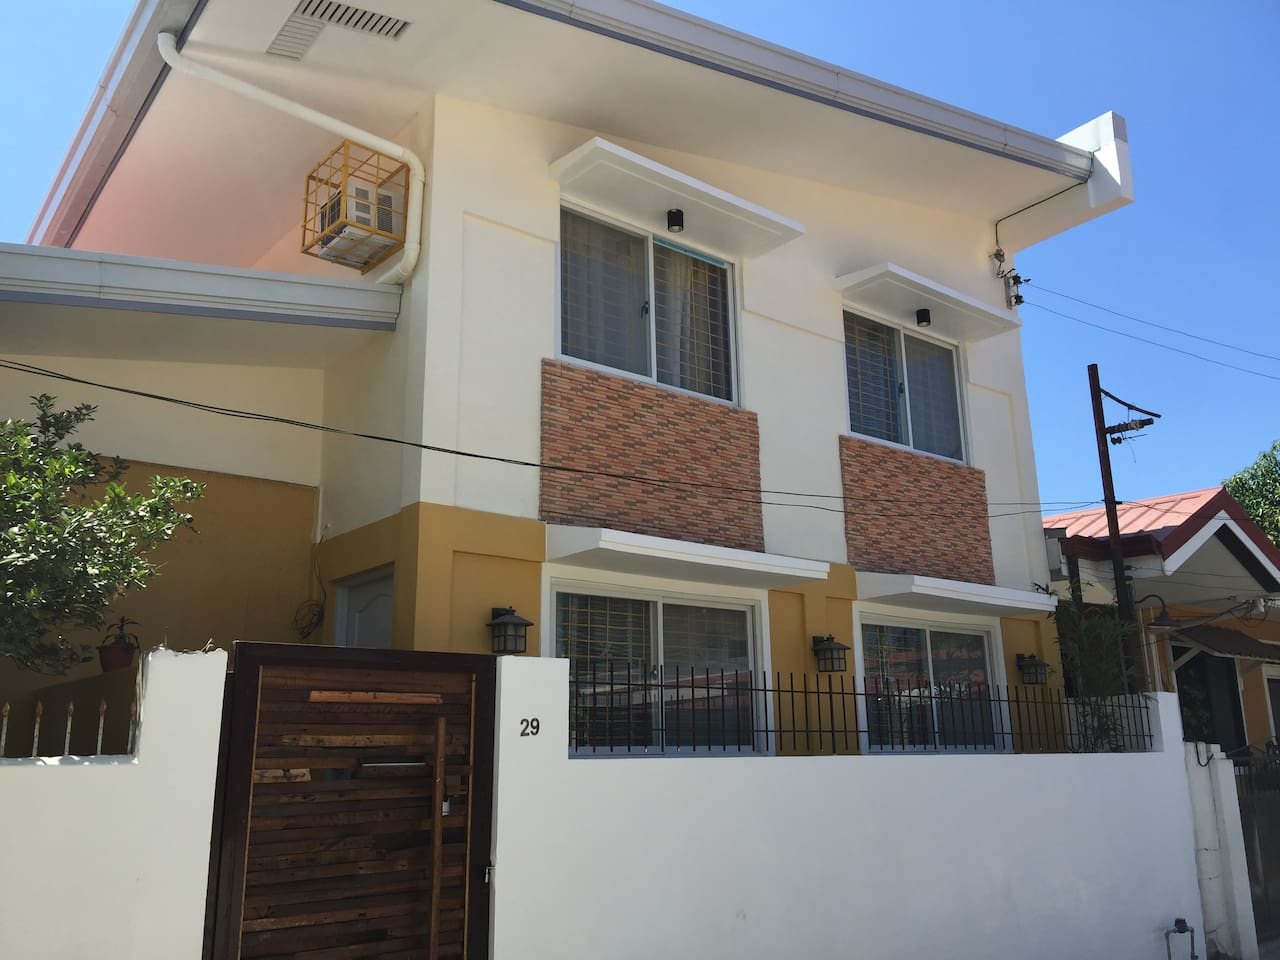 Facade of the newly-renovated duplex house